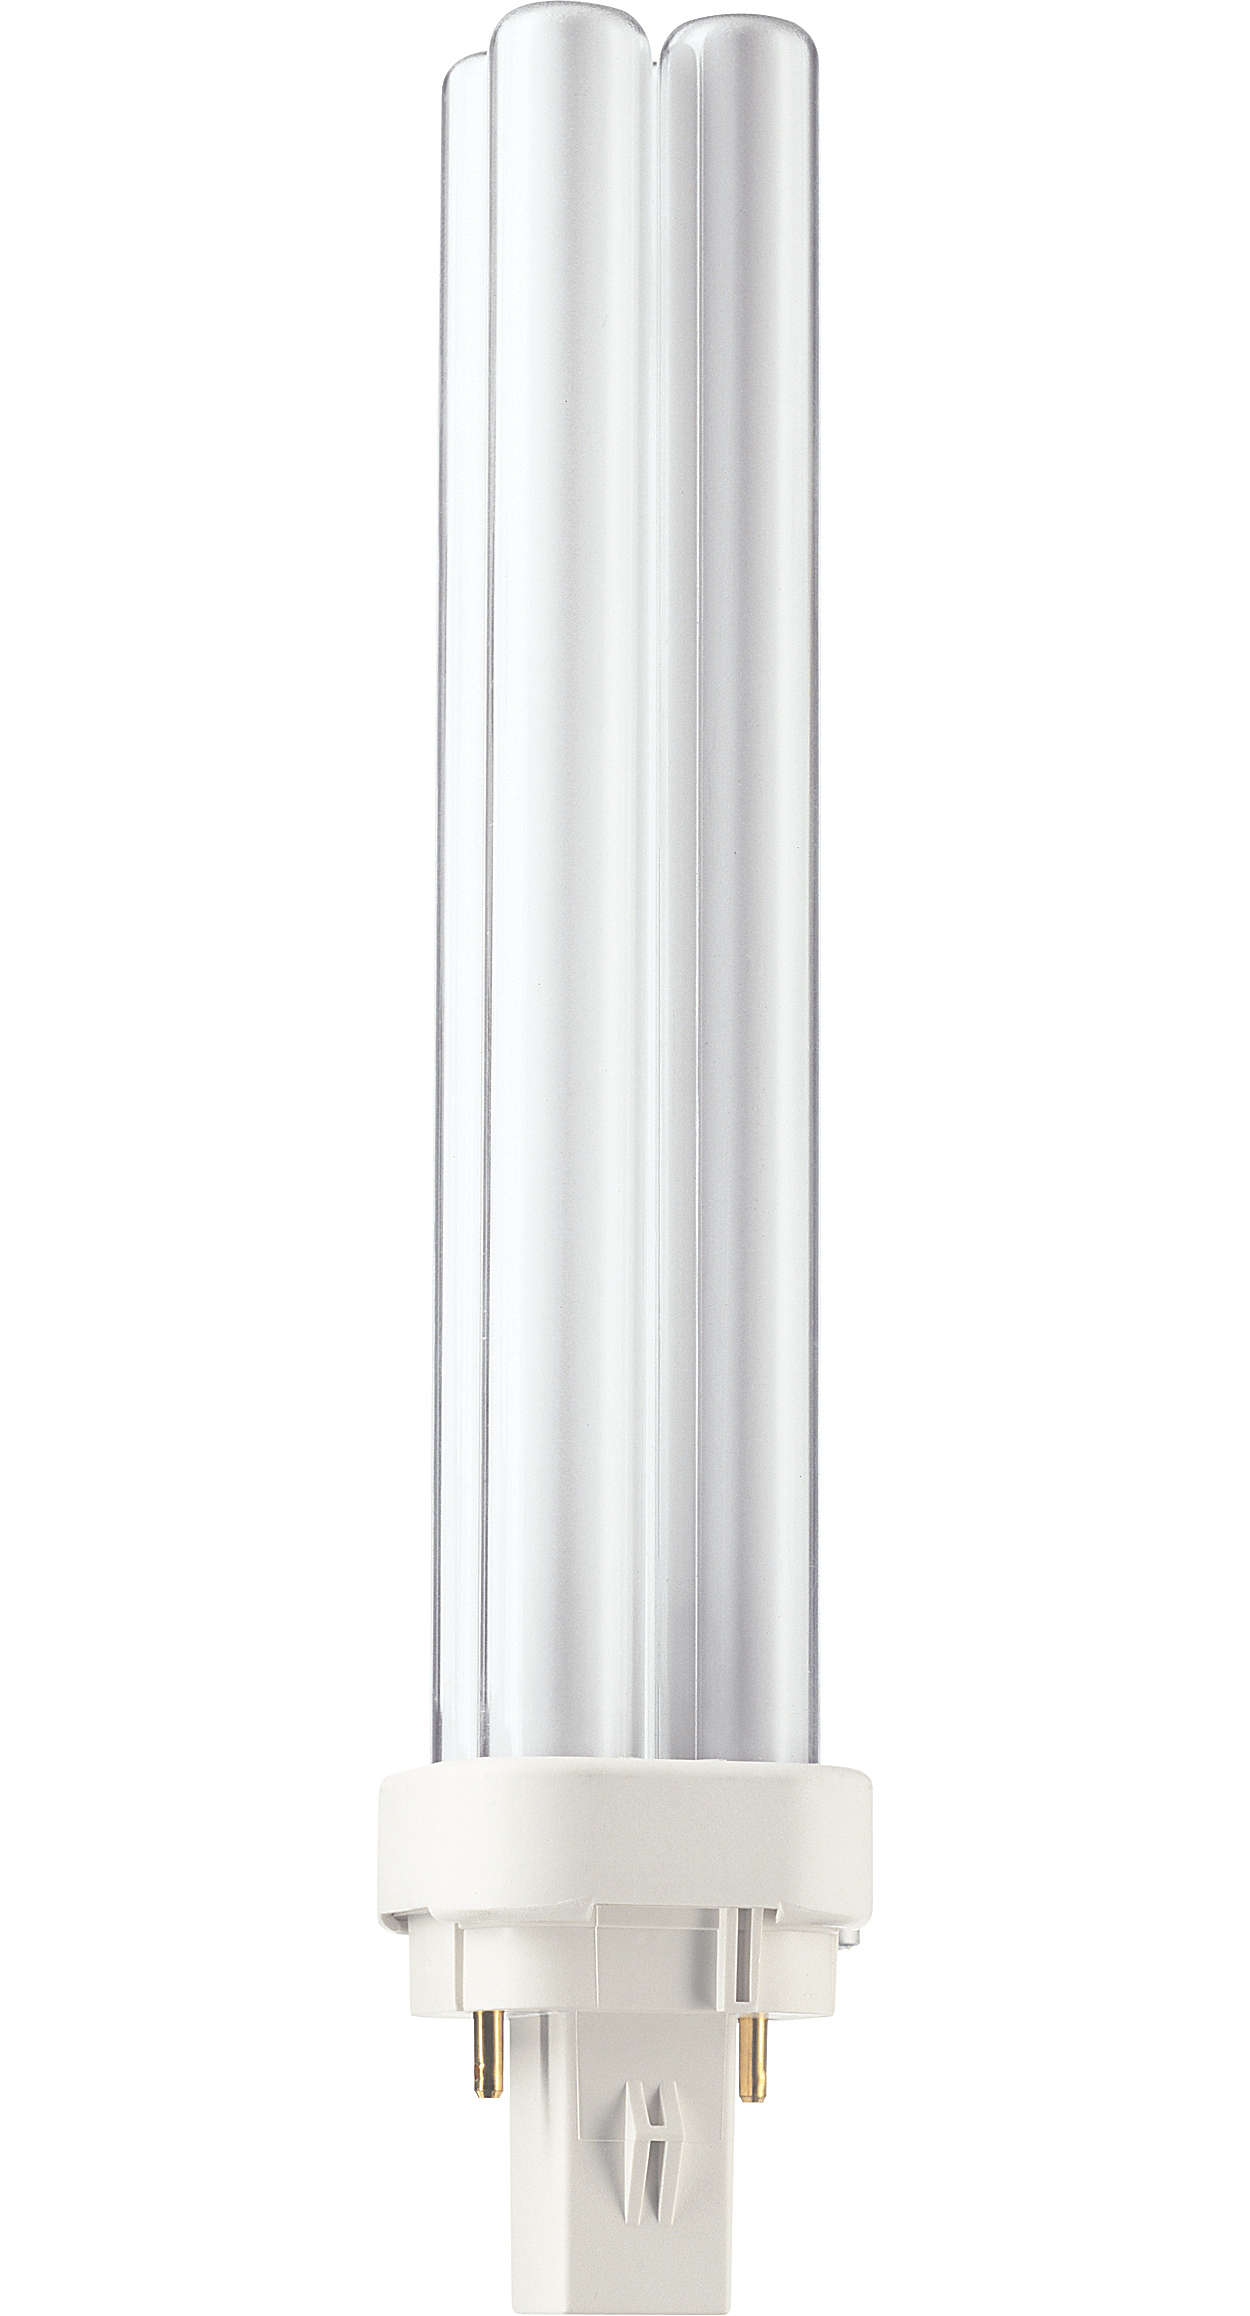 PL-C is an efficient medium-wattage compact fluorescent lamp